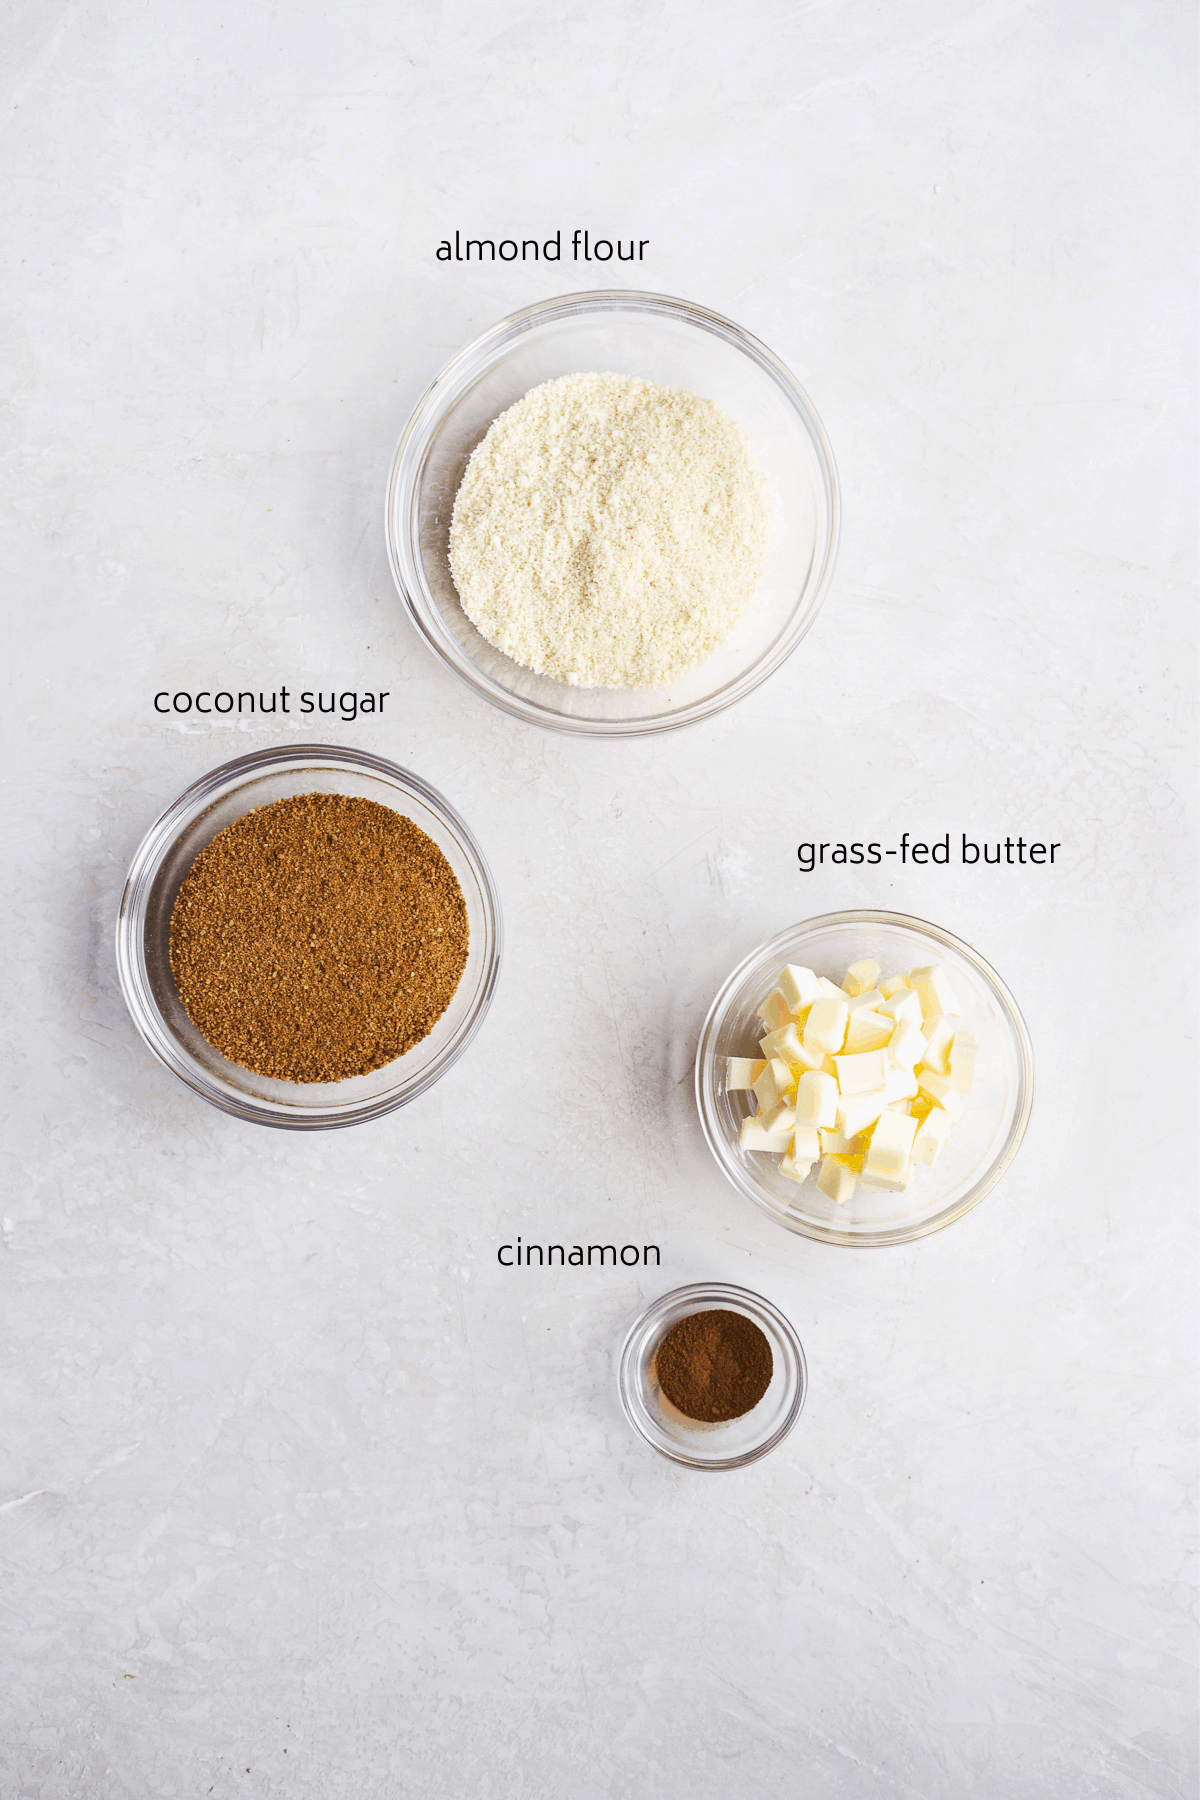 Image of streusel ingredients in glass bowls on a white surface with black labels.